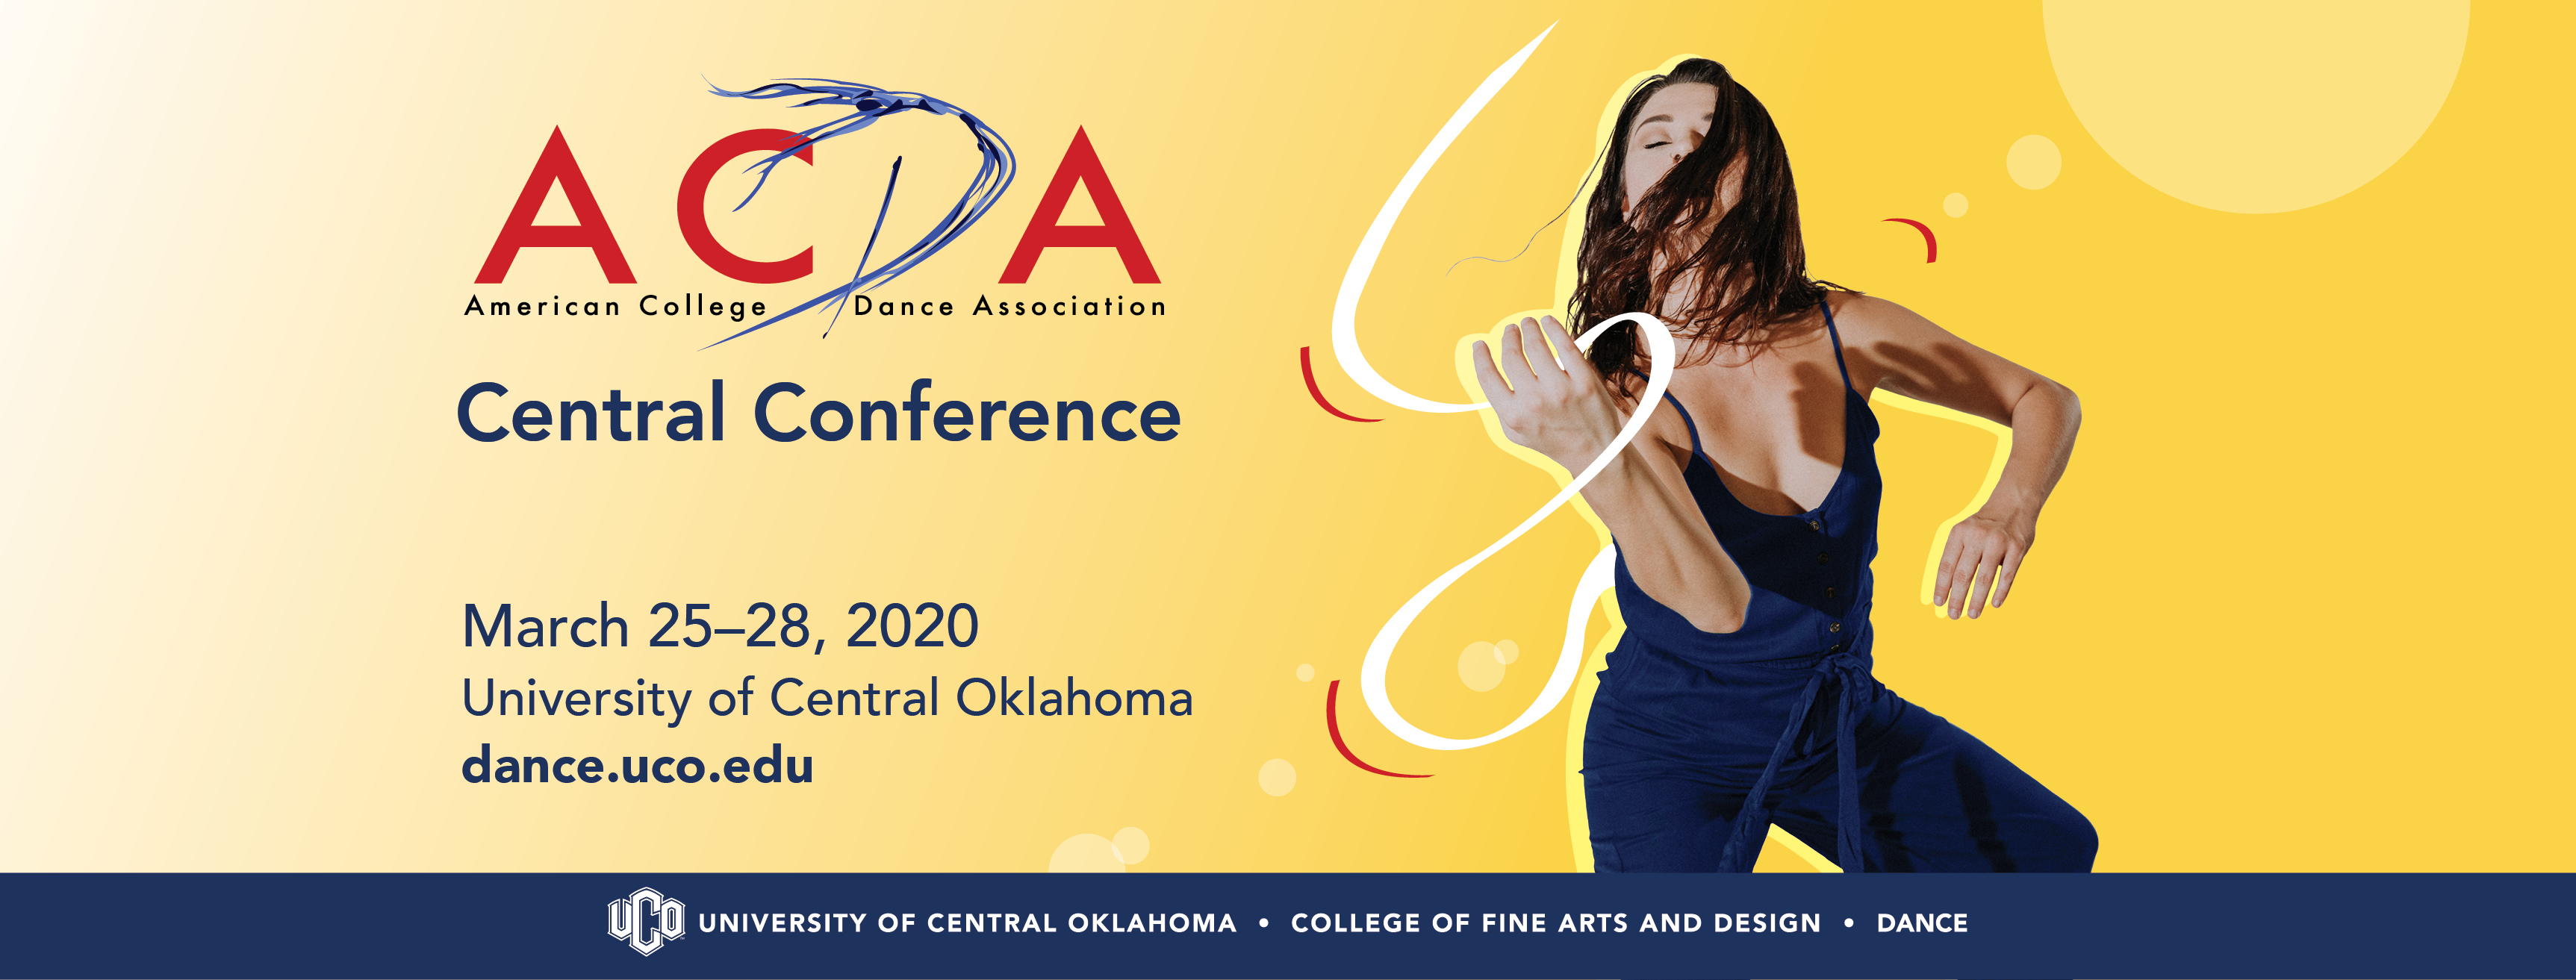 2020 ACDA Central Conference